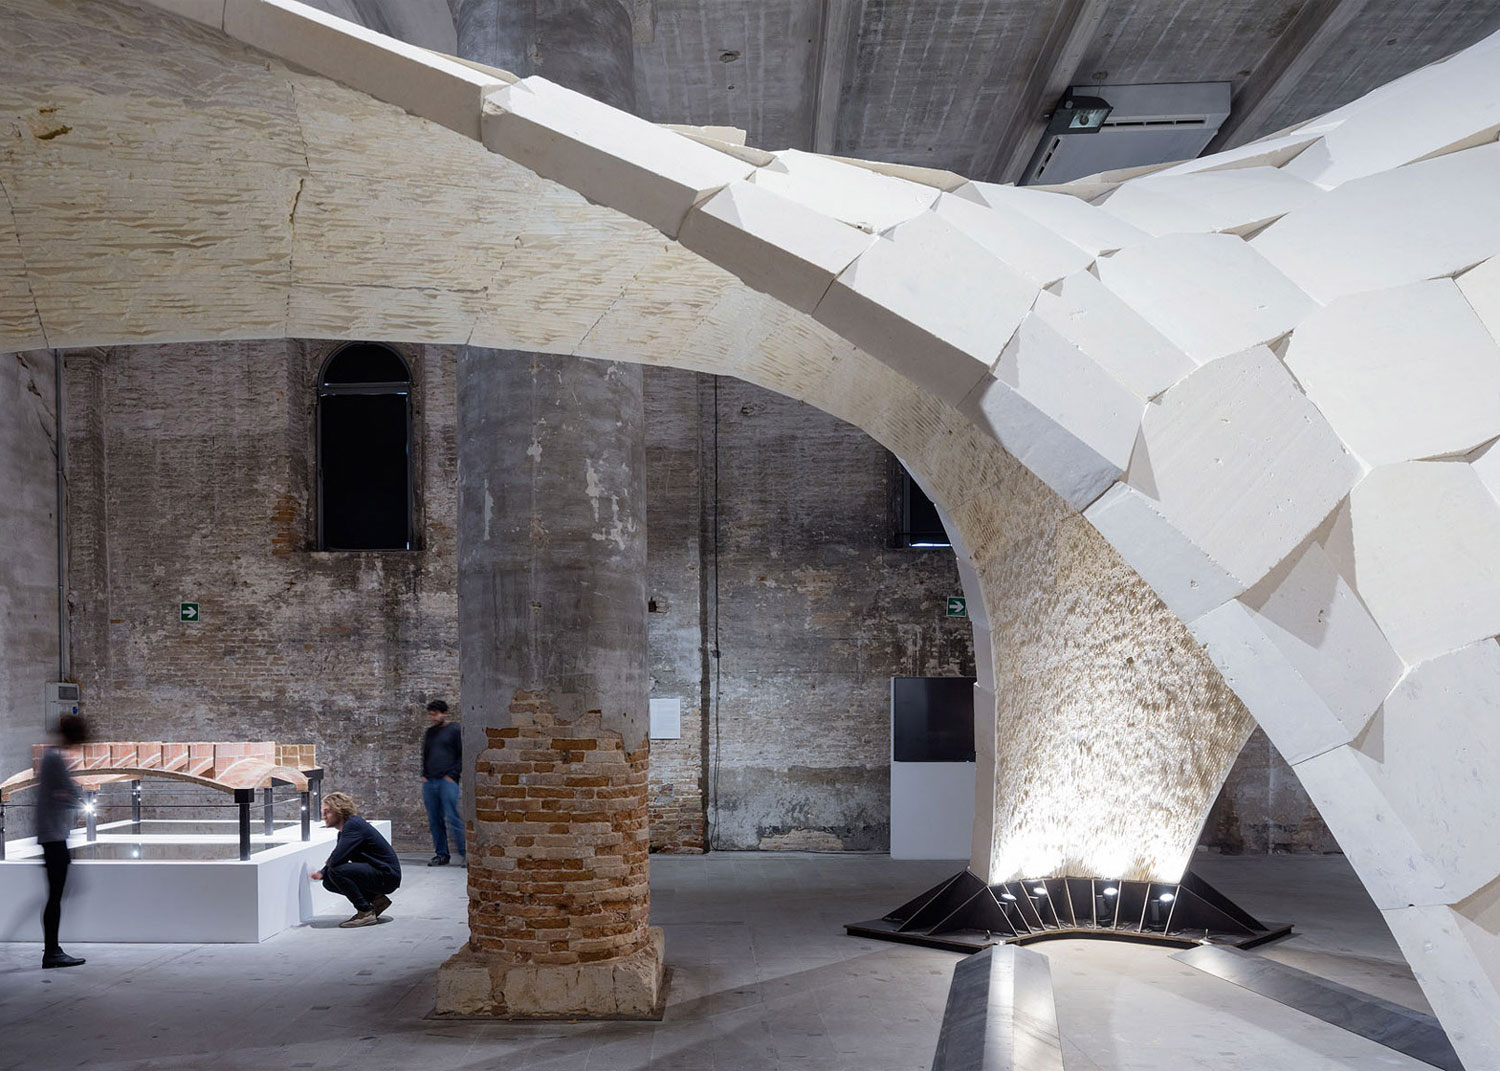 Armadillo Vault Beyond Bending Block Research Group Eth Zurich, Venice Architecture Biennale 2016. Photo by Iwan Baan | Yellowtrace